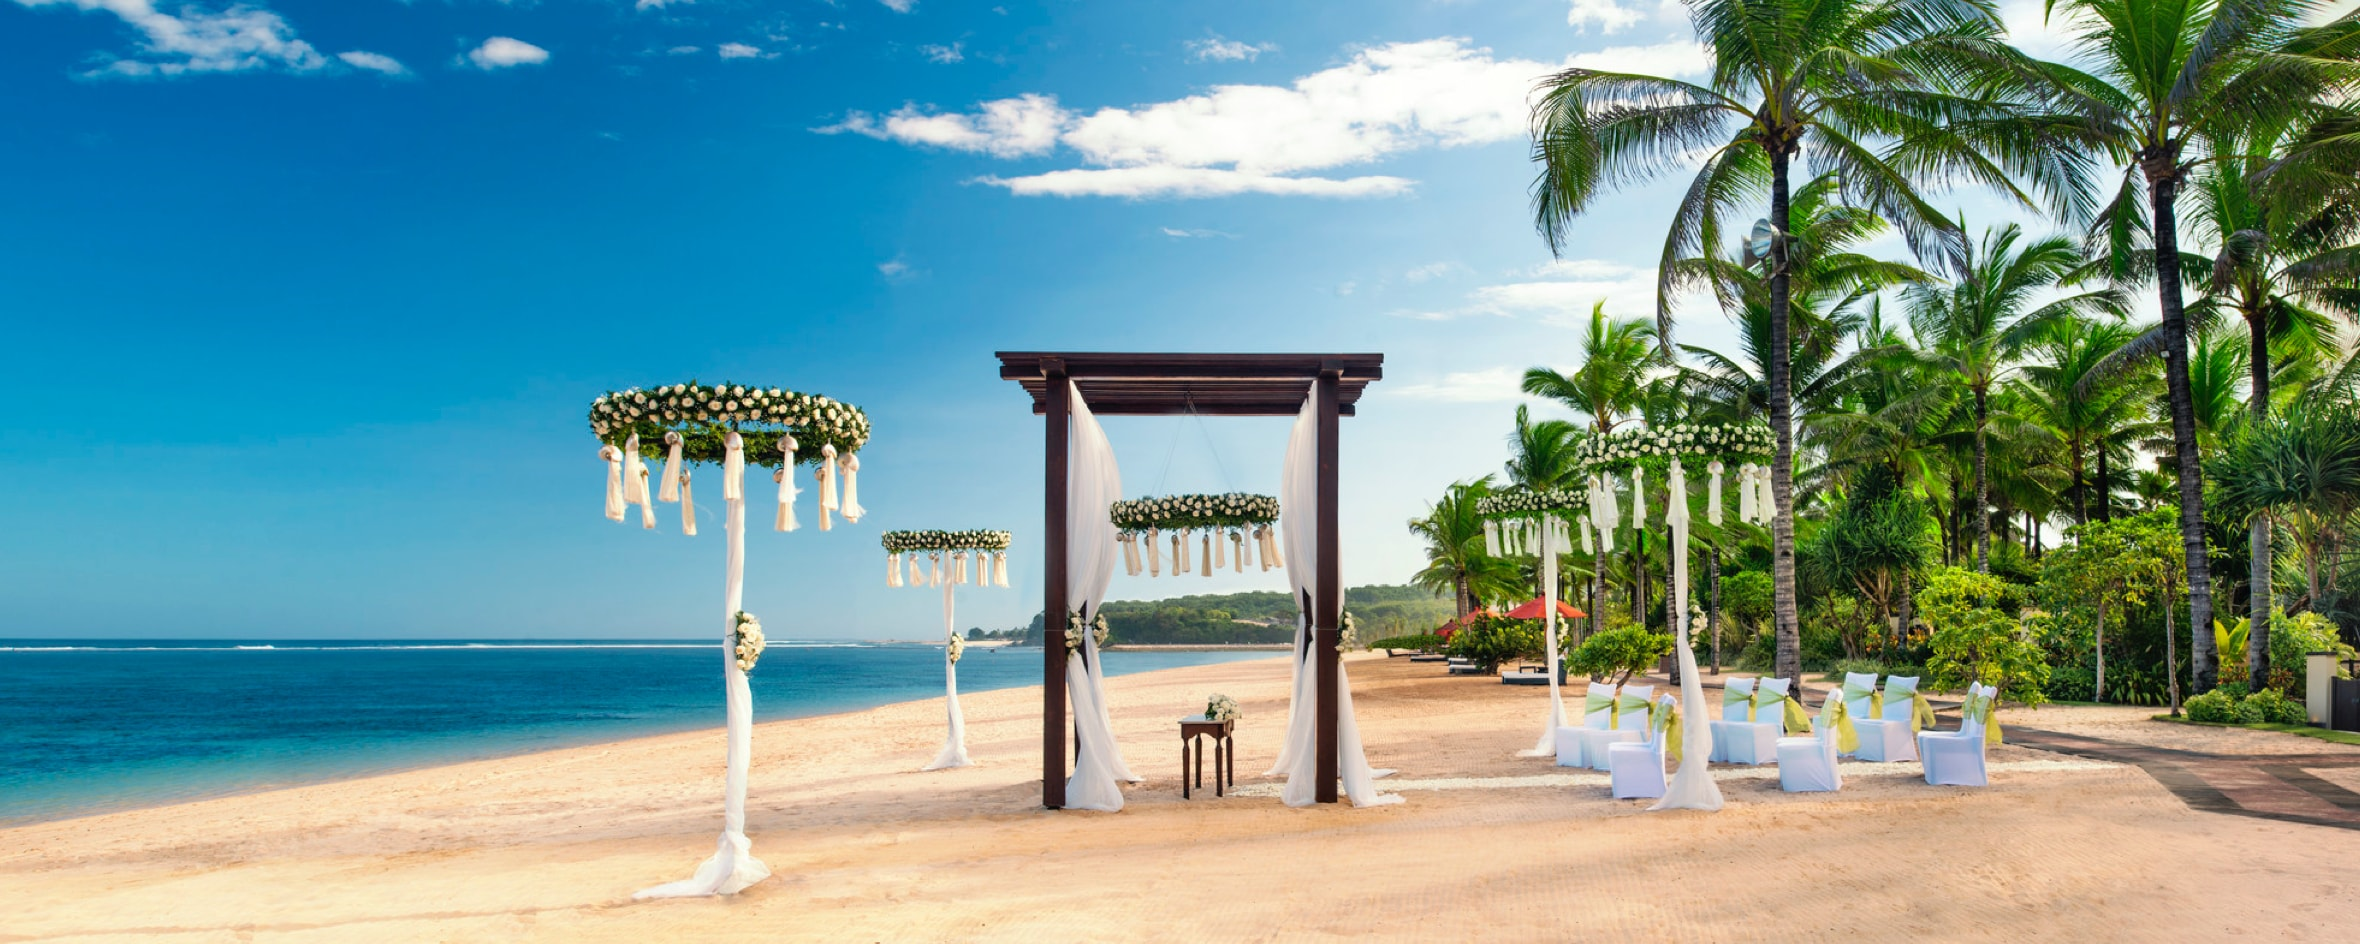 Preparations for a wedding on the beach